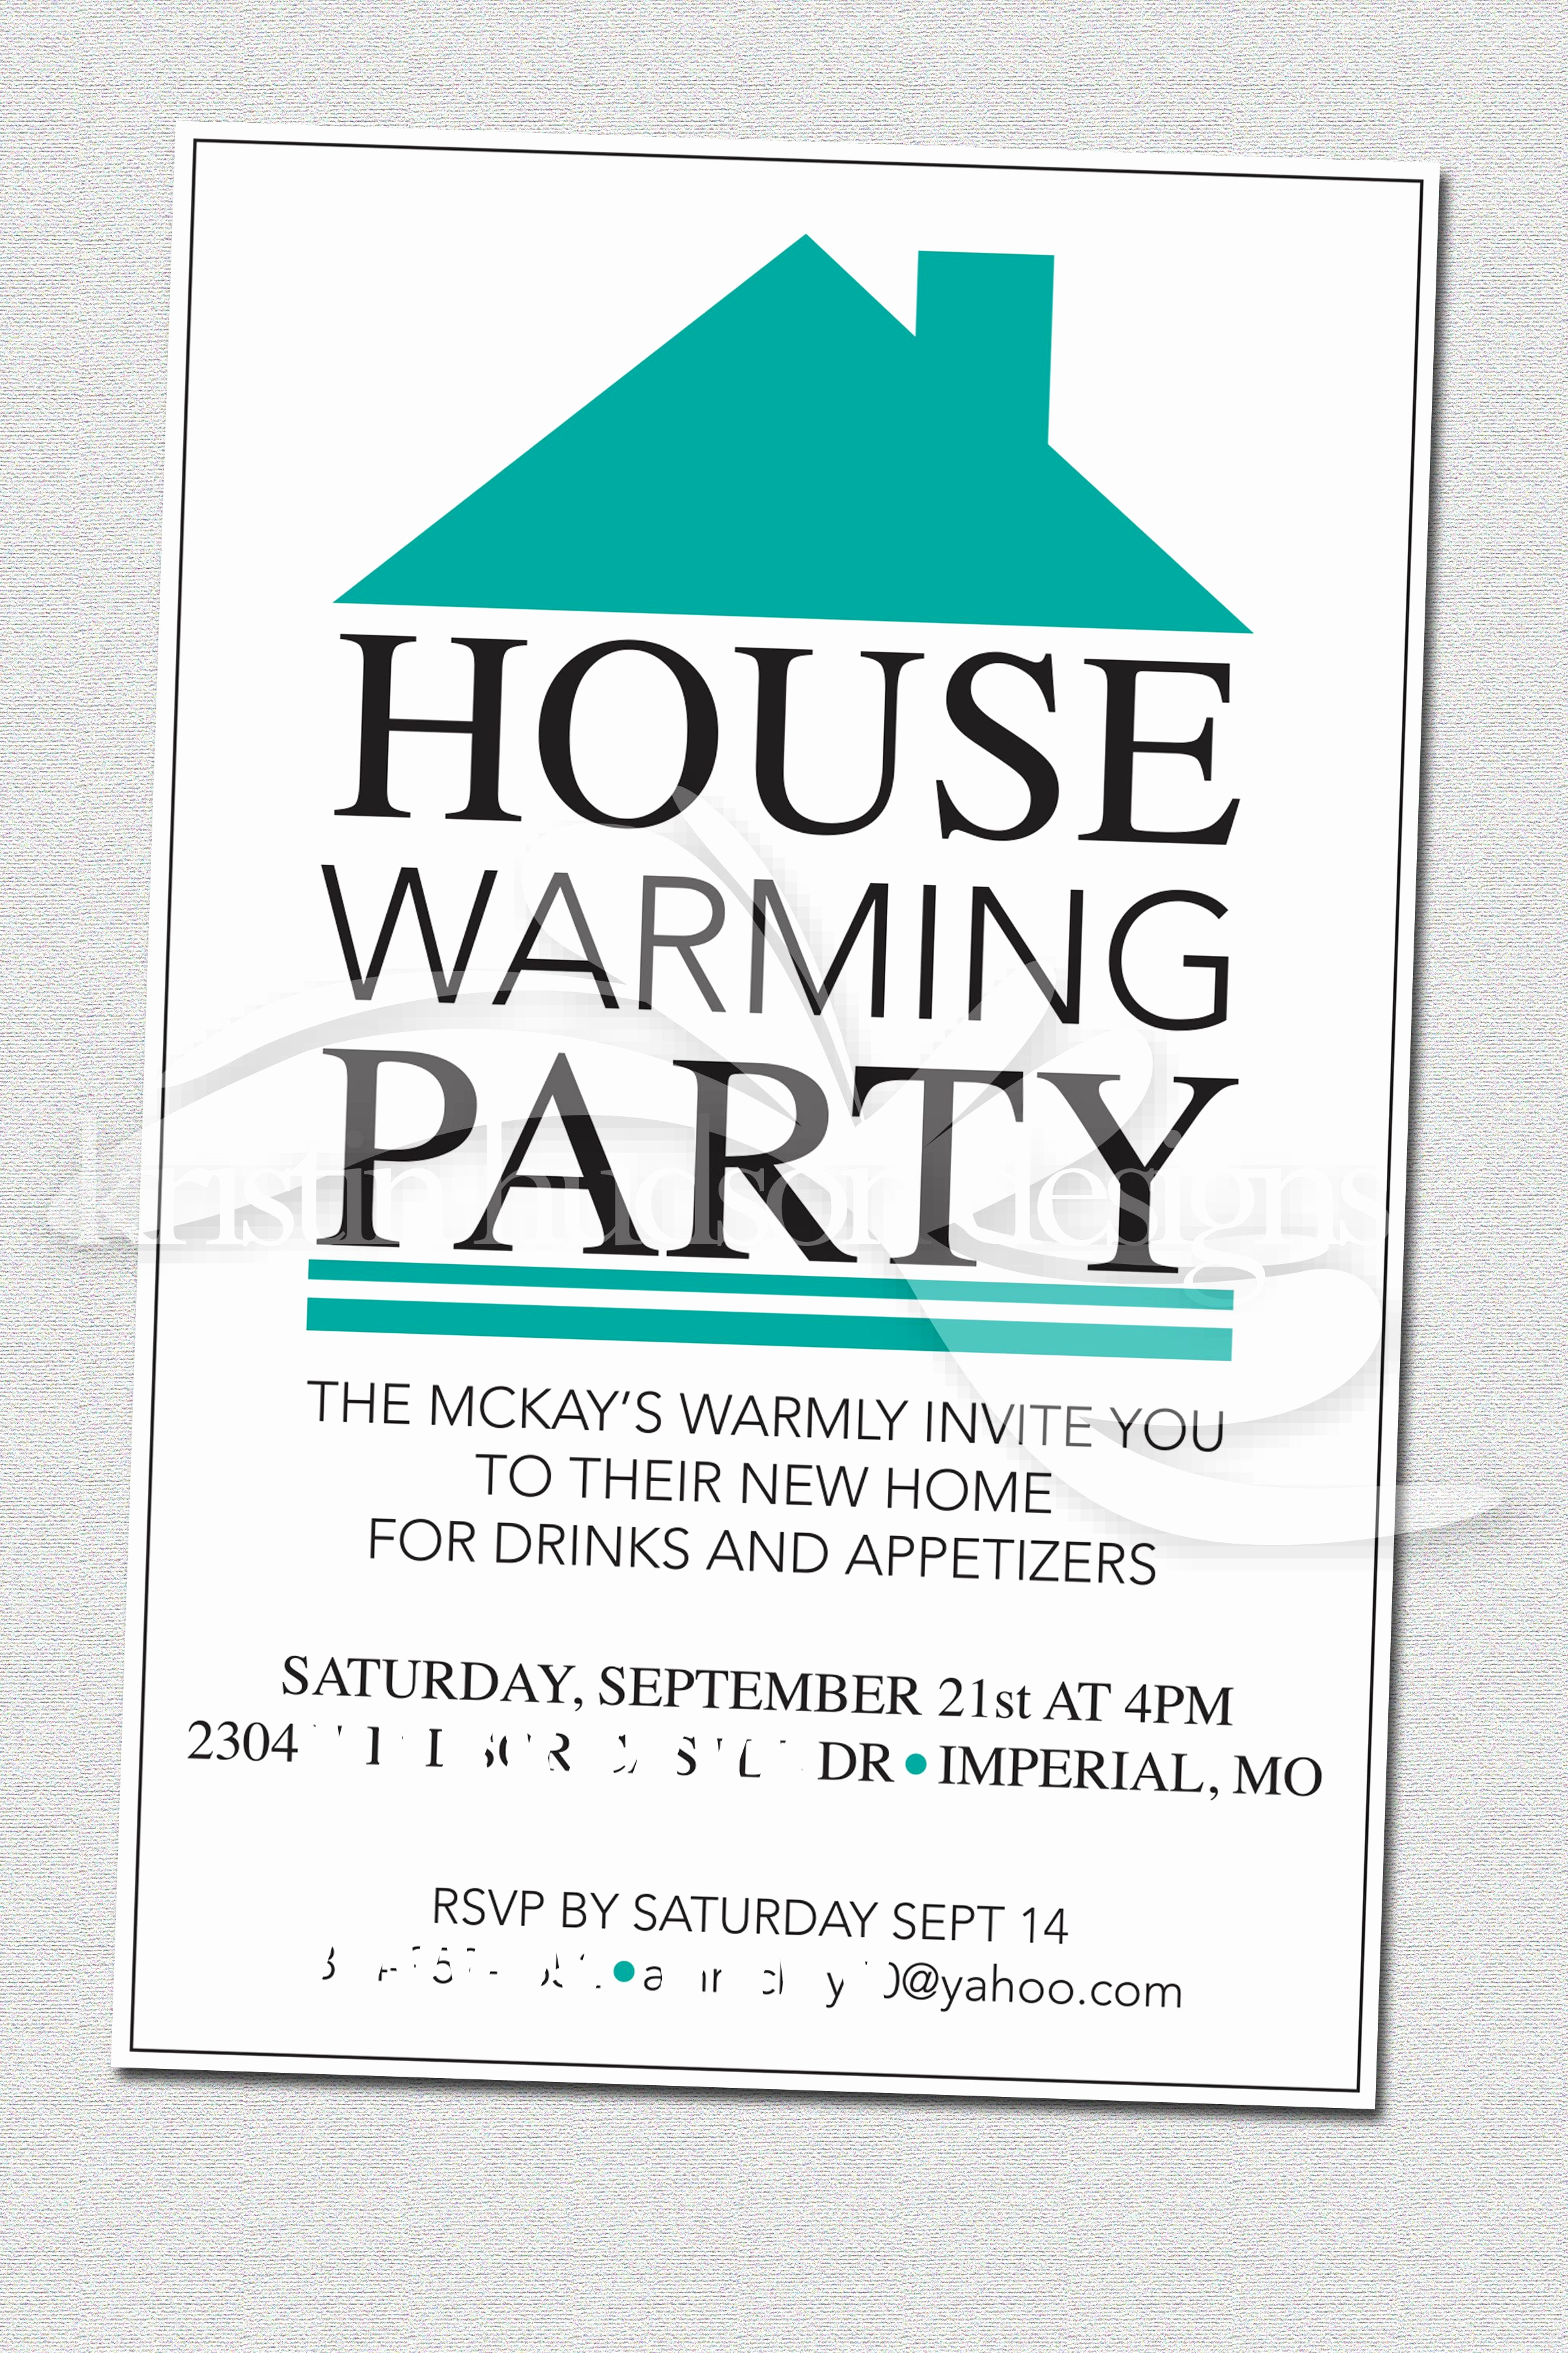 Open House Party Invitation Wording Fresh House Warming Party Invite